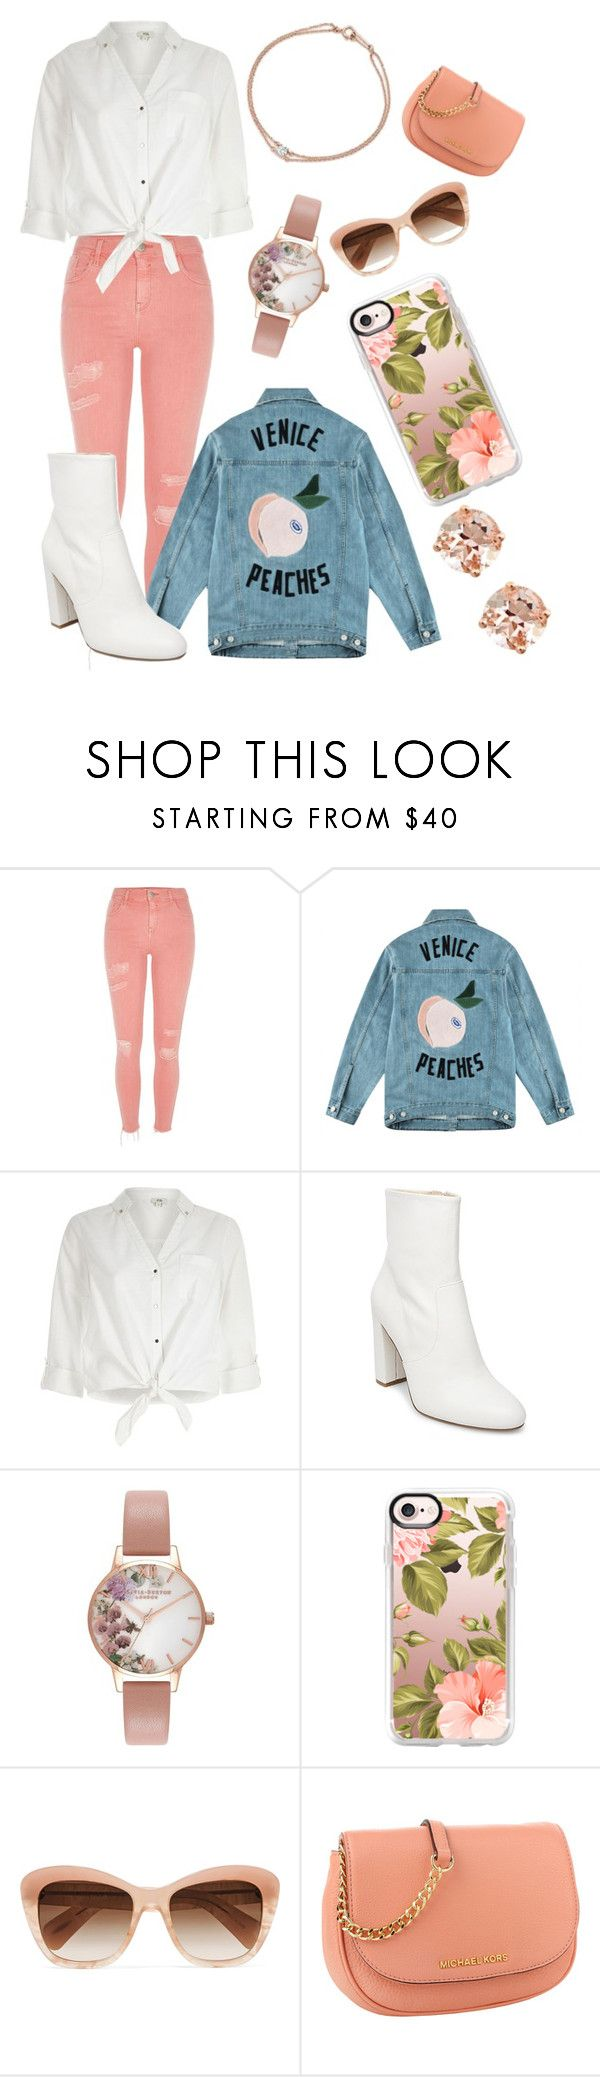 """""""peach (pastel)"""" by elise-the-emo-kitty ❤ liked on Polyvore featuring River Island, Être Cécile, Steve Madden, Olivia Burton, Casetify, Oliver Peoples and Anika and August"""